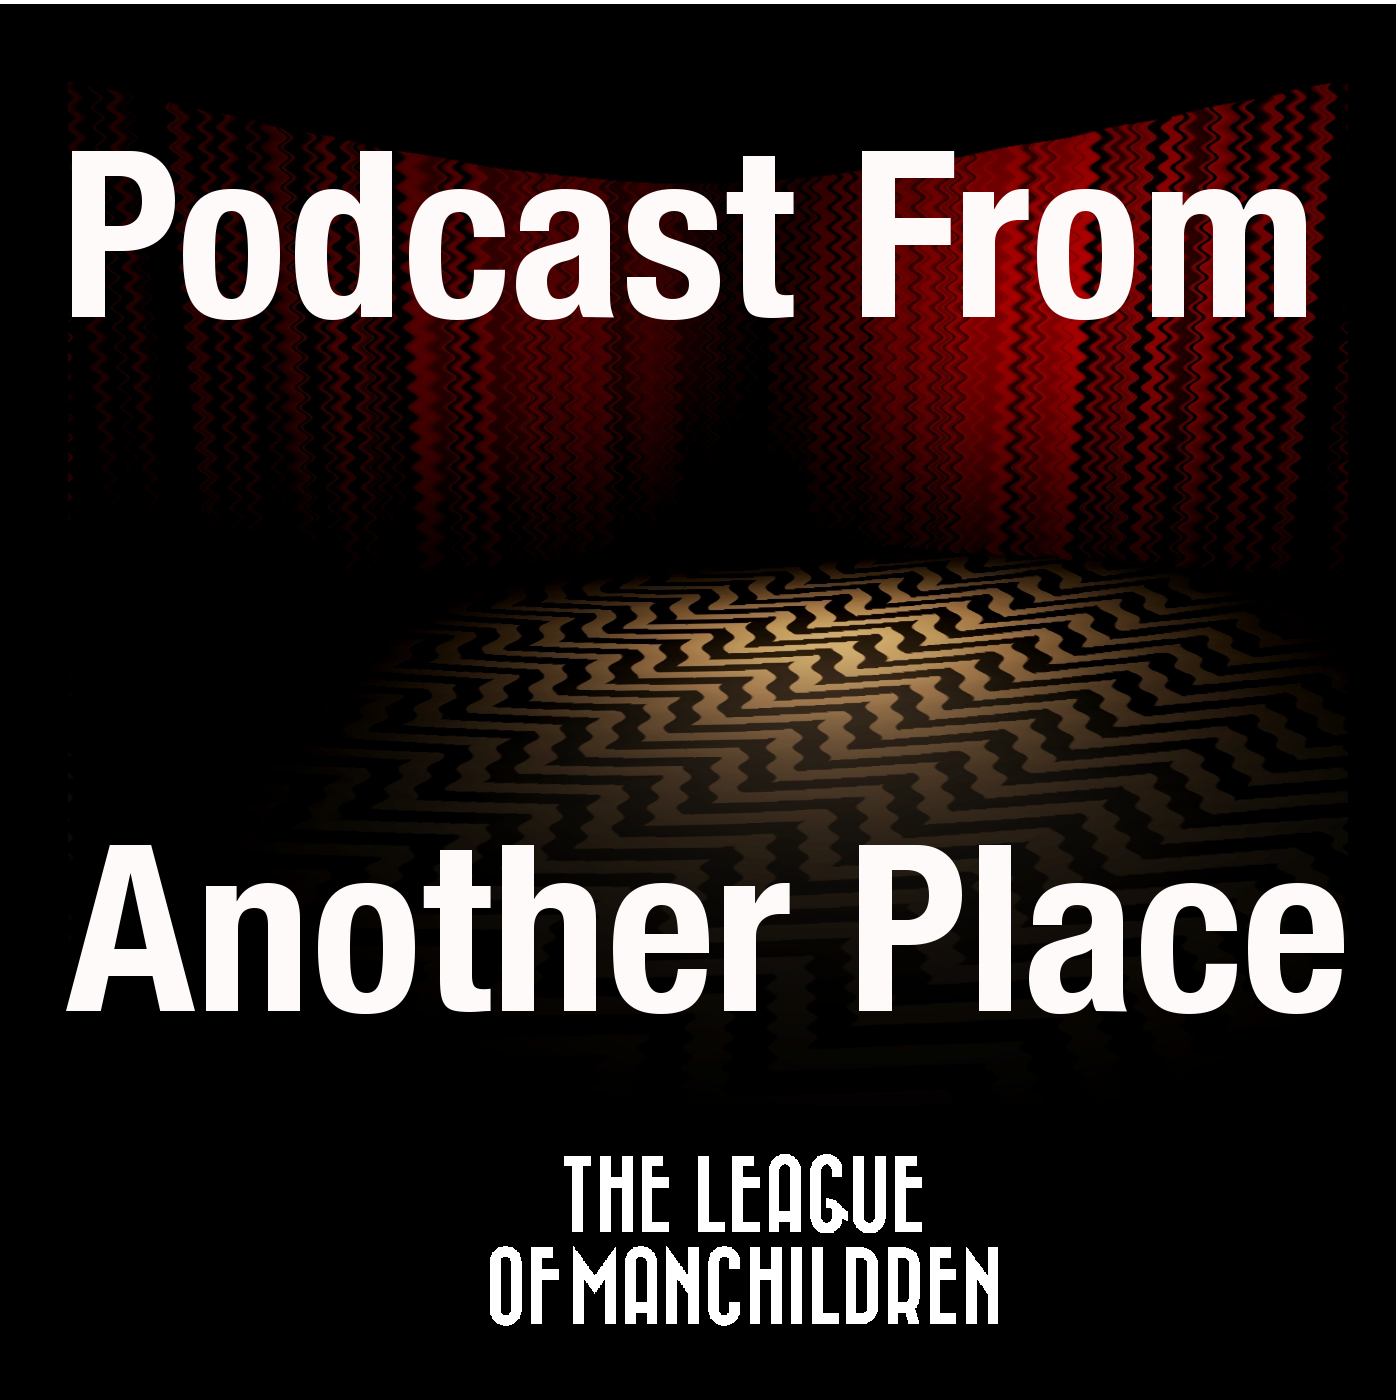 Podcast From Another Place #31 - Beyond Life and Death show art